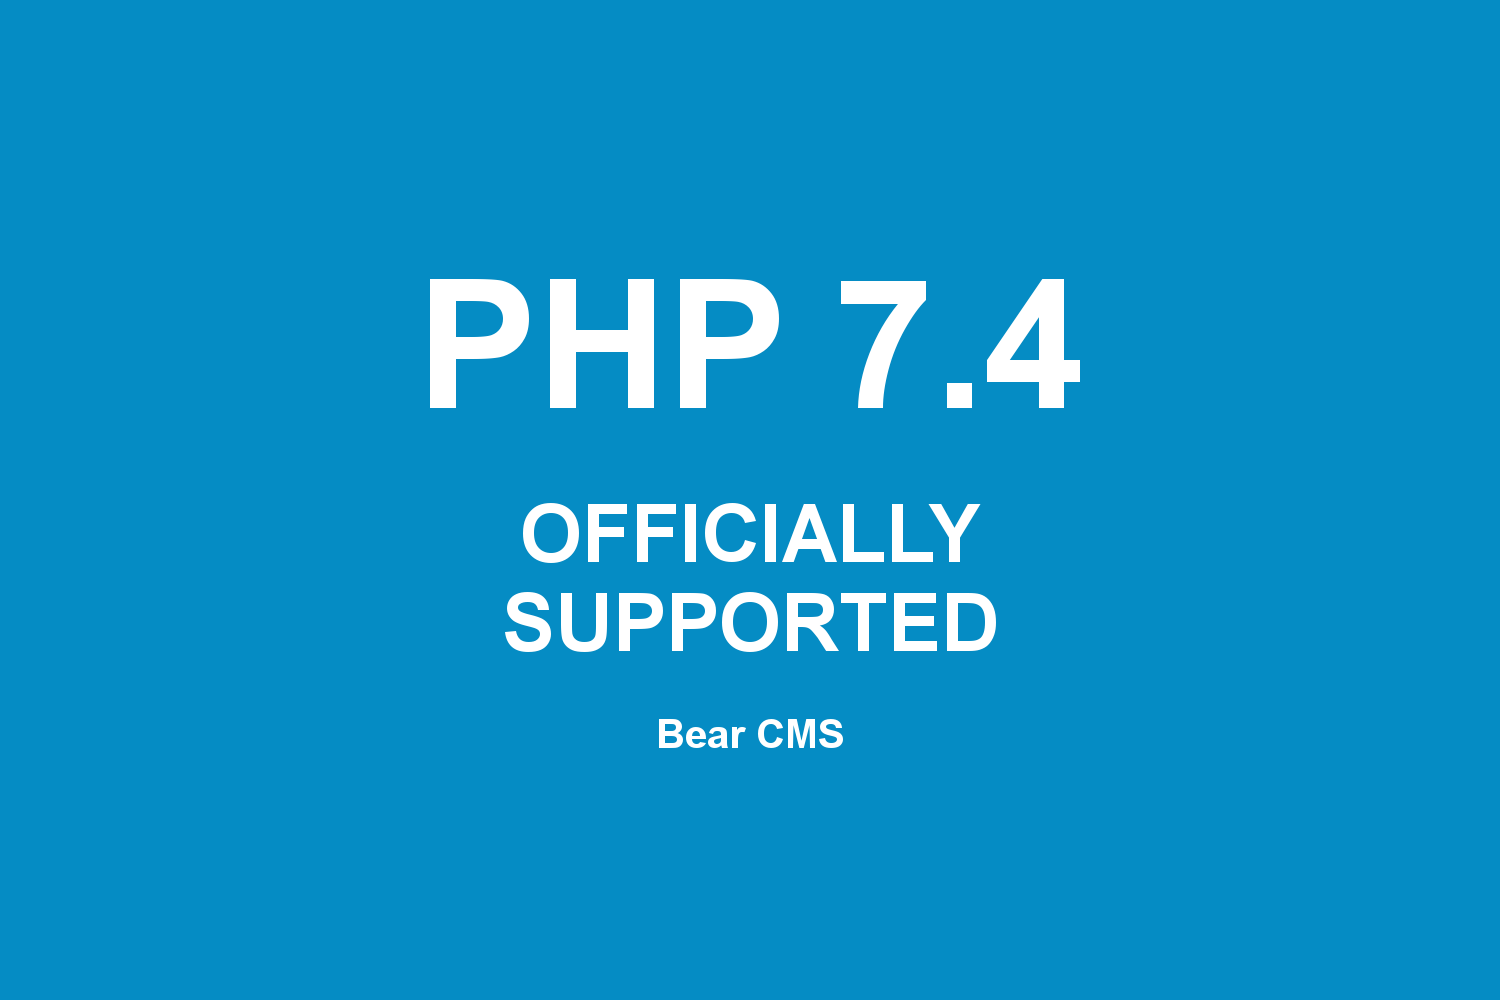 PHP 7.4 is now supported